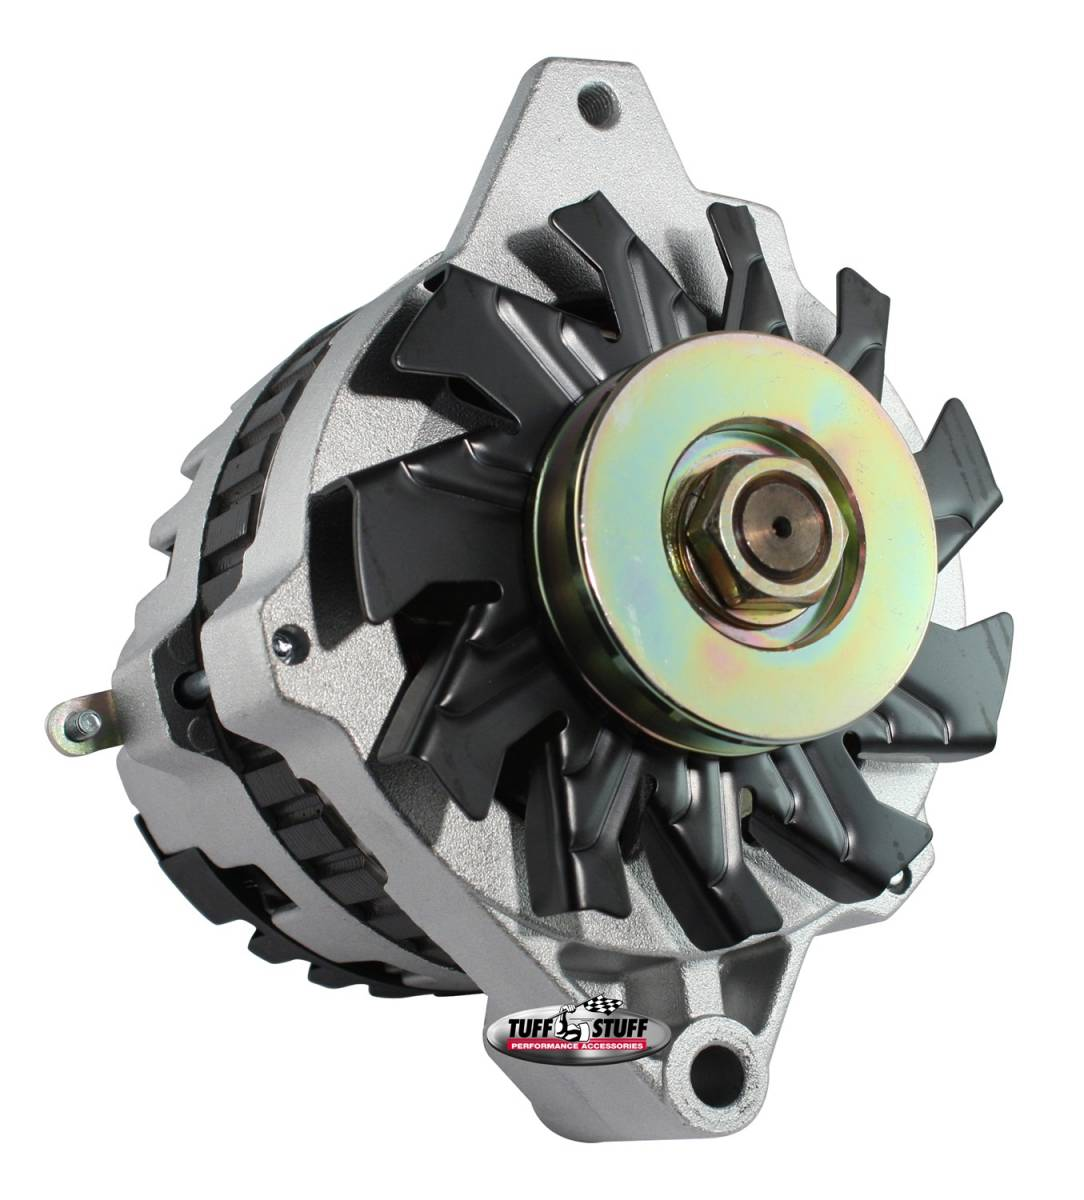 Tuff Stuff Performance - Alternator 105 AMP 1 Wire Or OEM V Groove Pulley Factory Cast PLUS+ 7935-11G